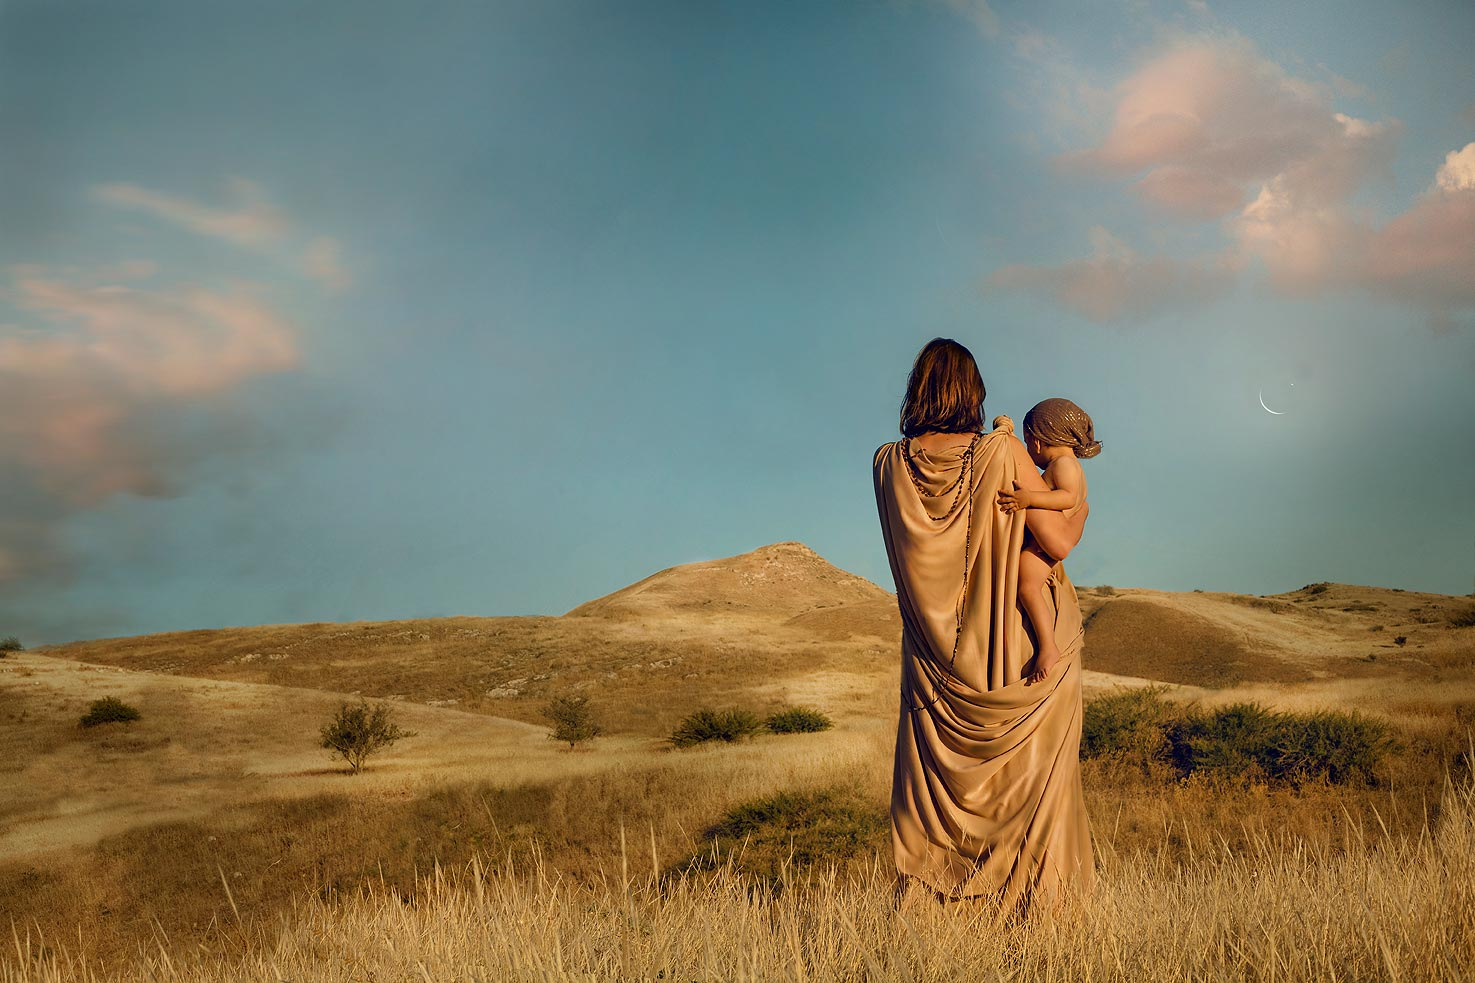 Hagar & Ishmael ״And God heard the voice of the lad; and the angel of God called to Hagar out of heaven, and said unto her: 'What aileth thee, Hagar? fear not; for God hath heard the voice of the lad where he is. . ״Genesis 21;17